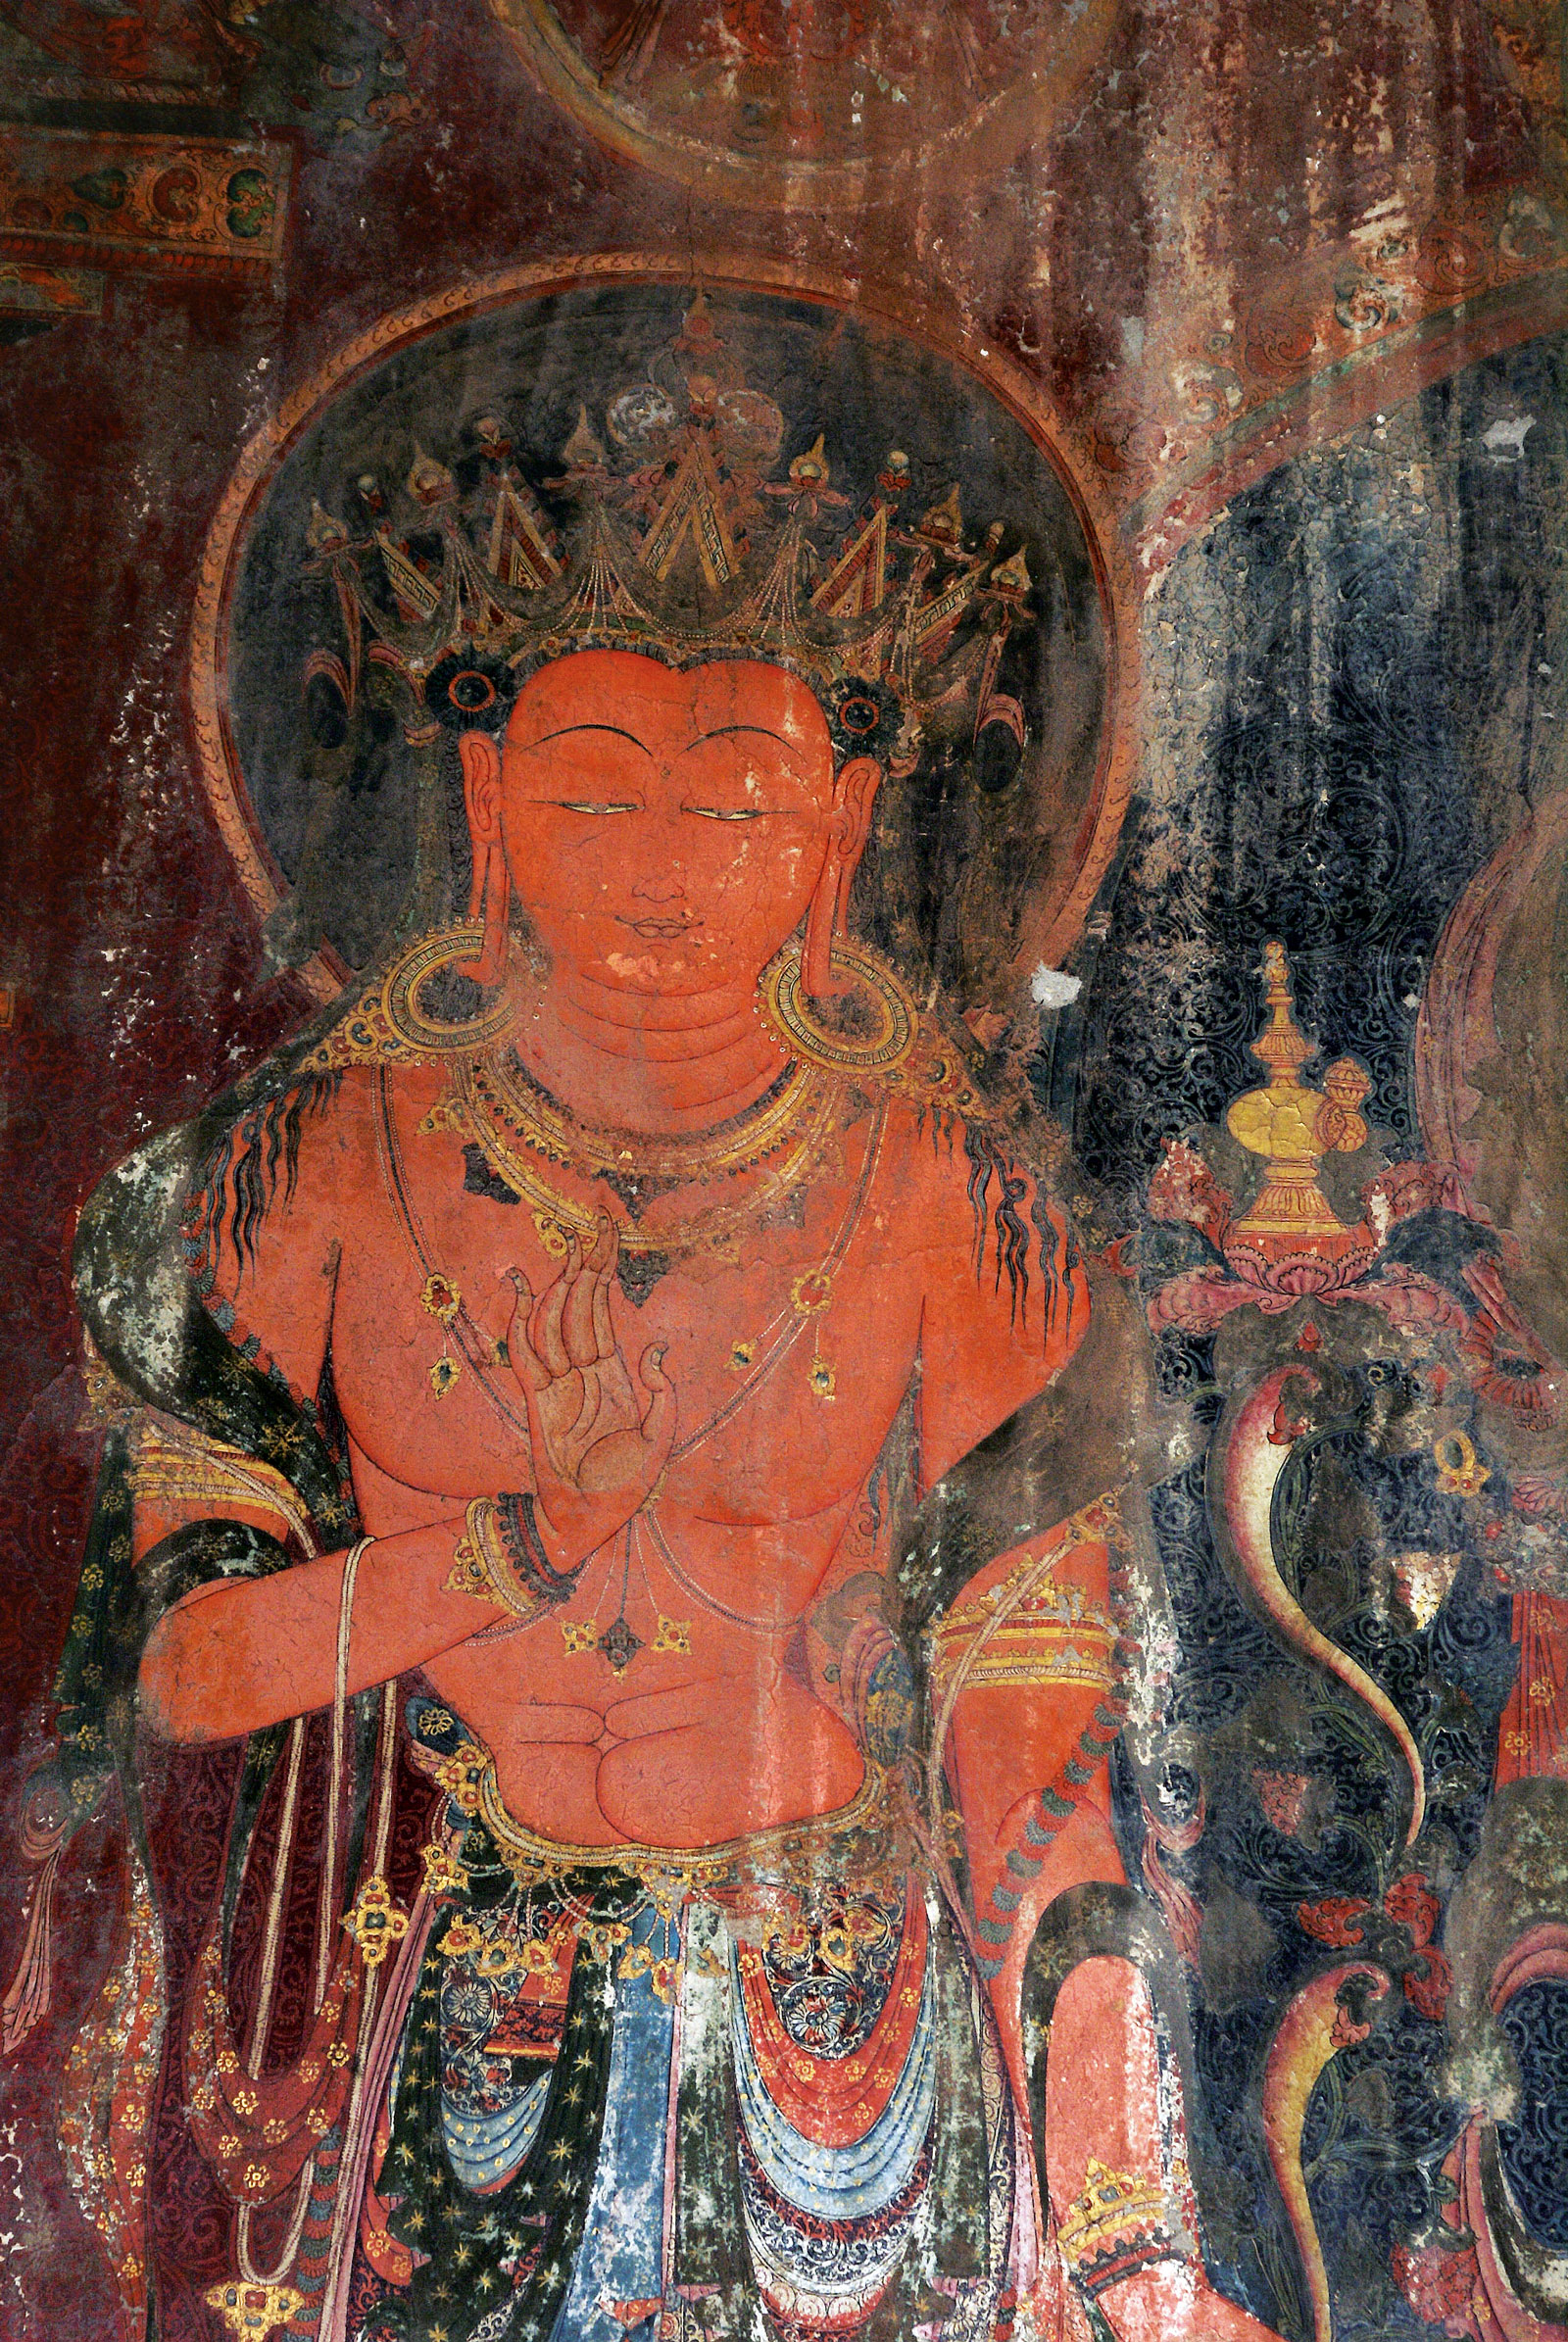 Detail of a wall painting showing the bodhisattva Maitreya on the south wall of the Red Assembly Hall, Tholing, 1436-1449